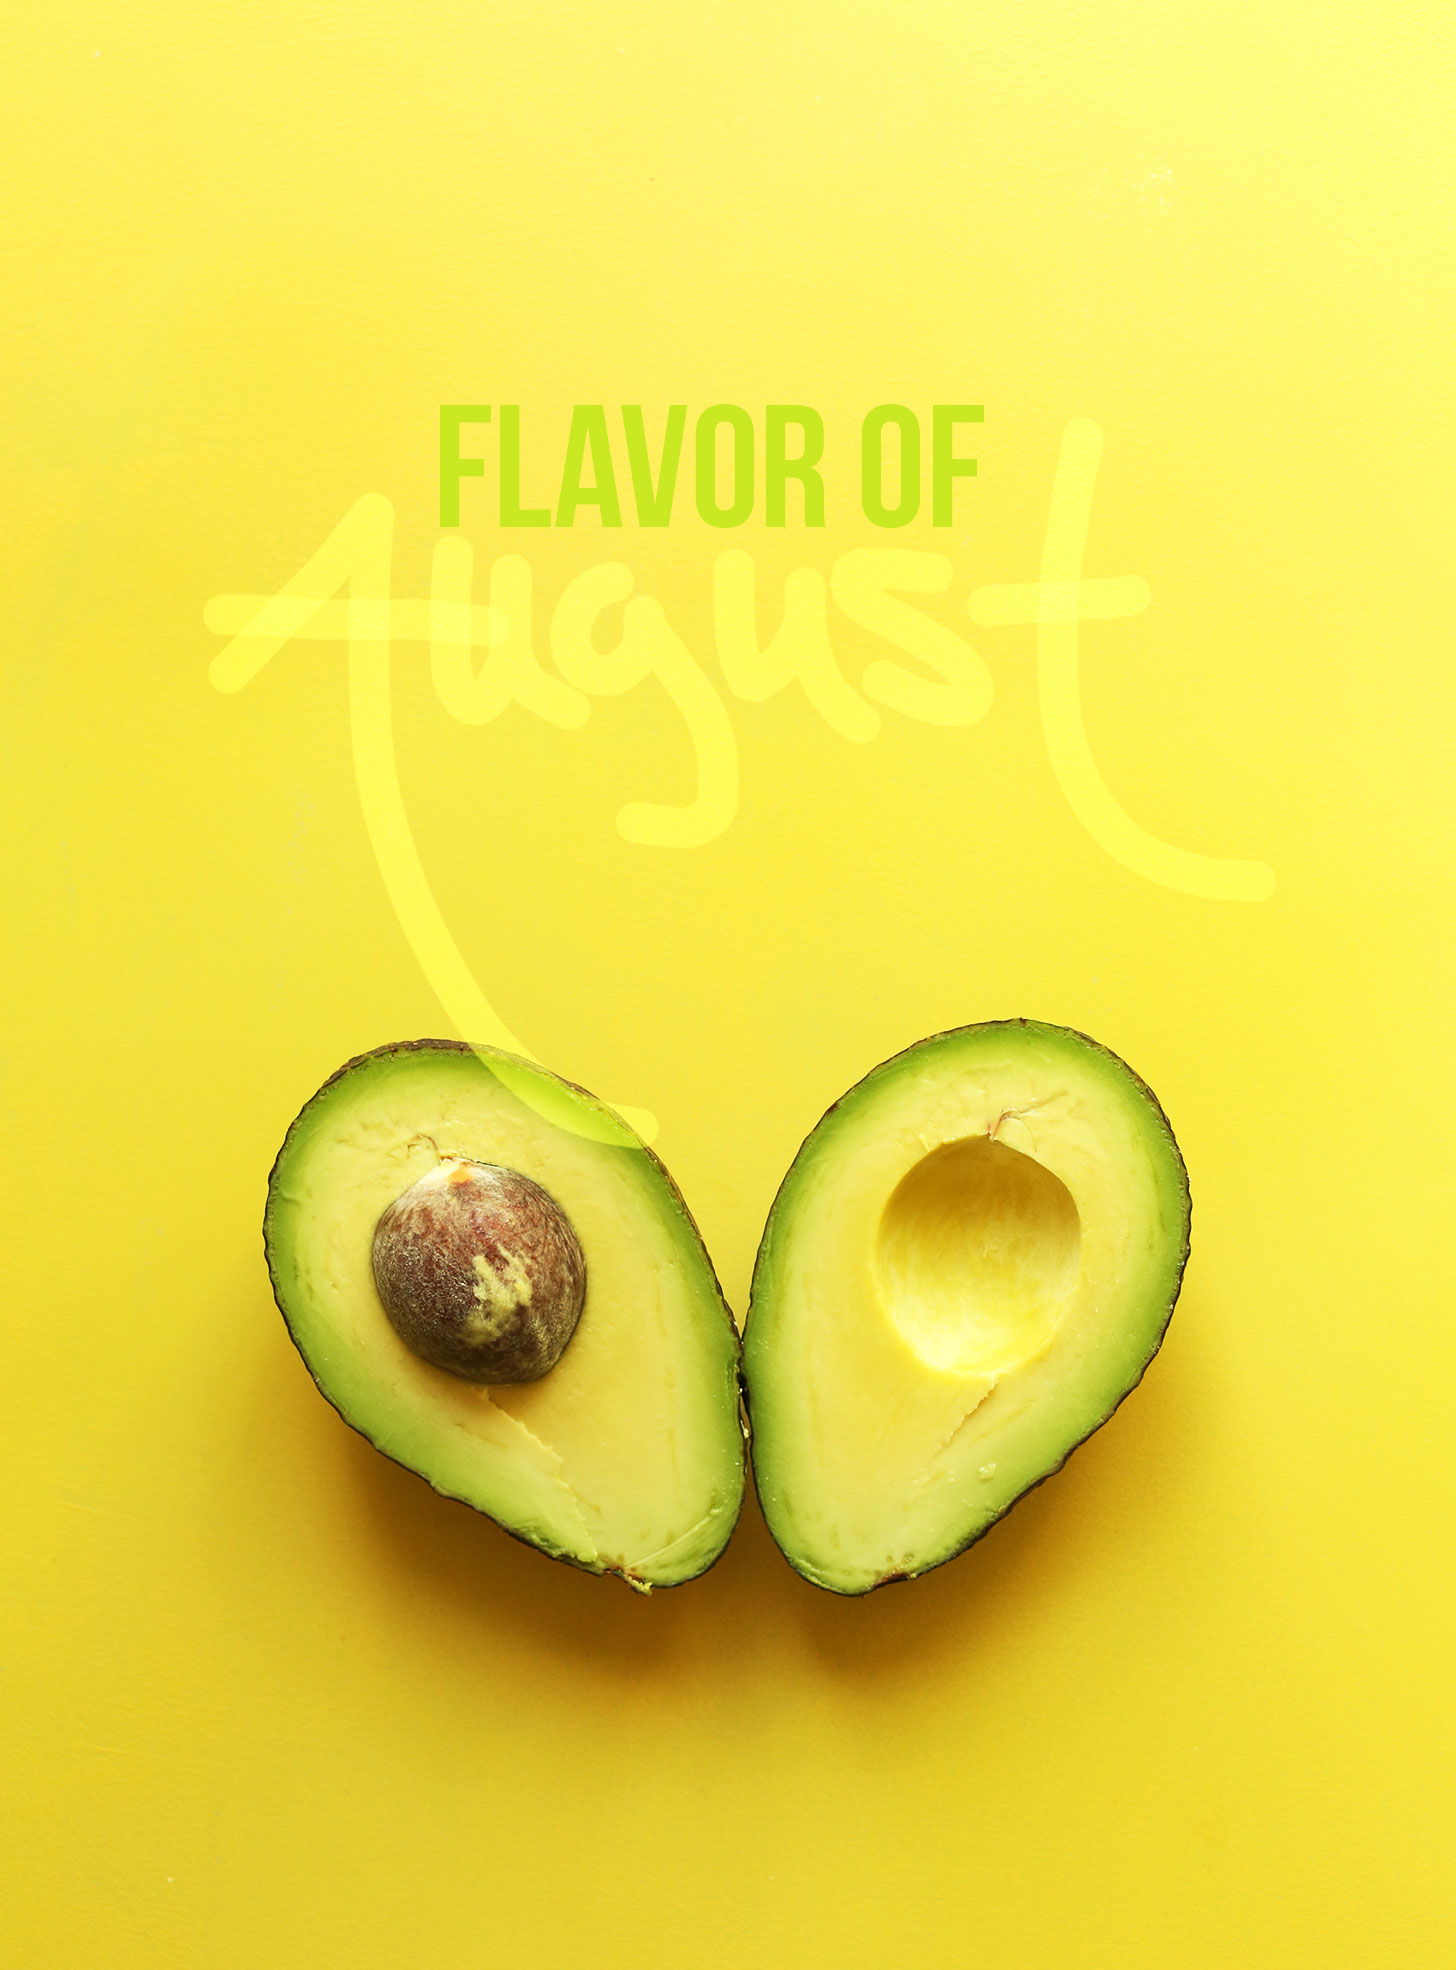 Picture of a halved avocado to represent our Flavor of August